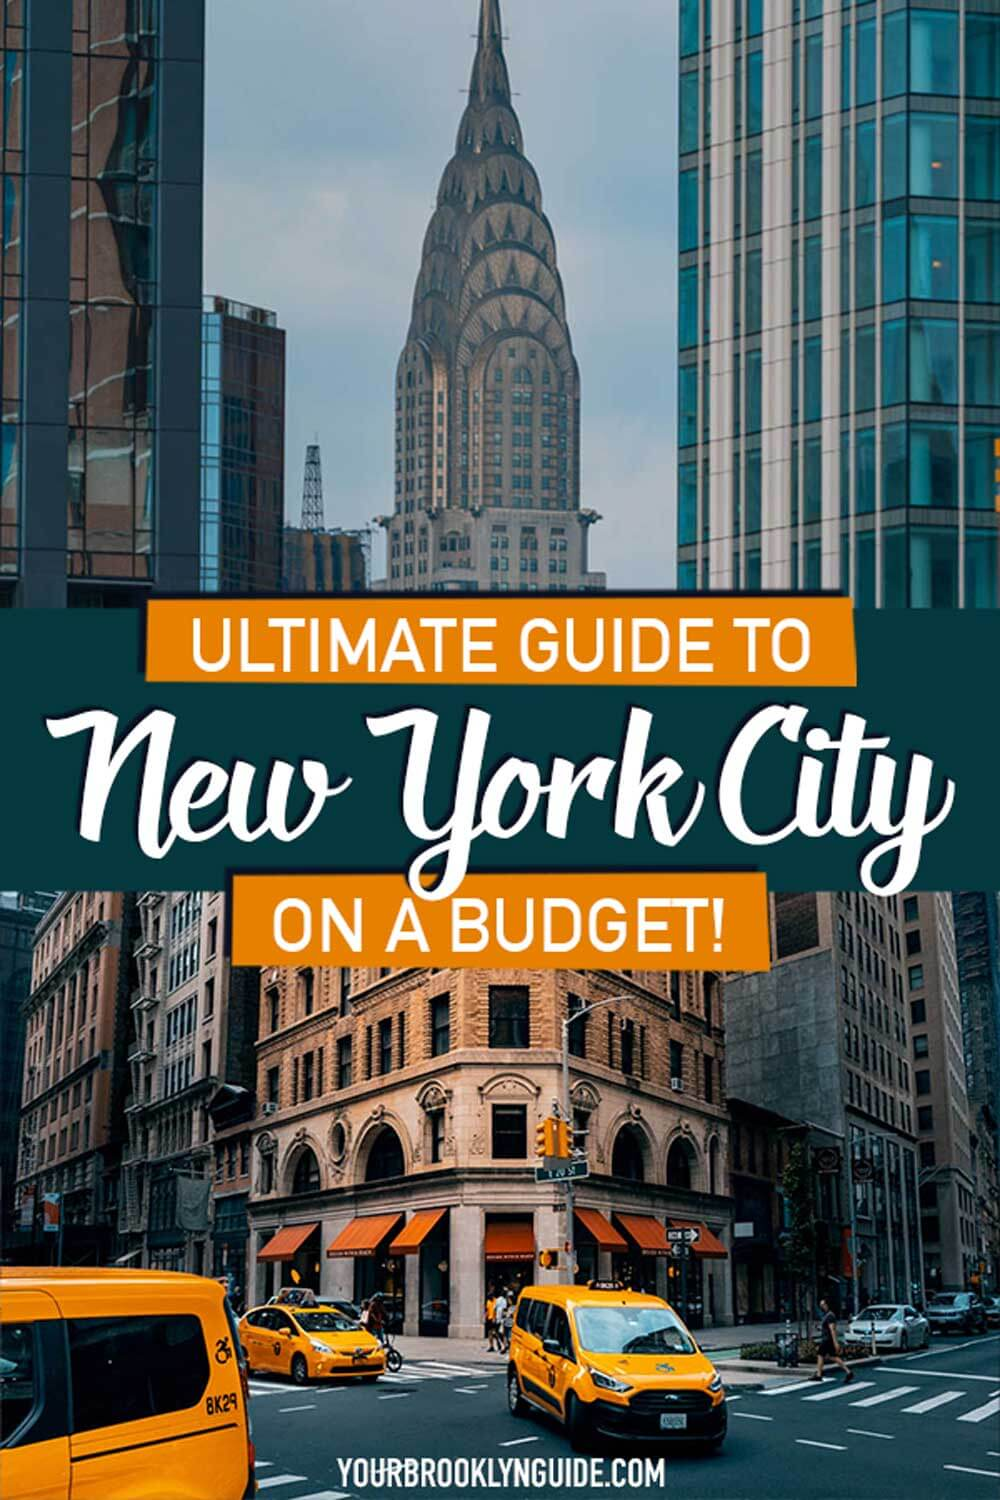 nyc-budget-guide